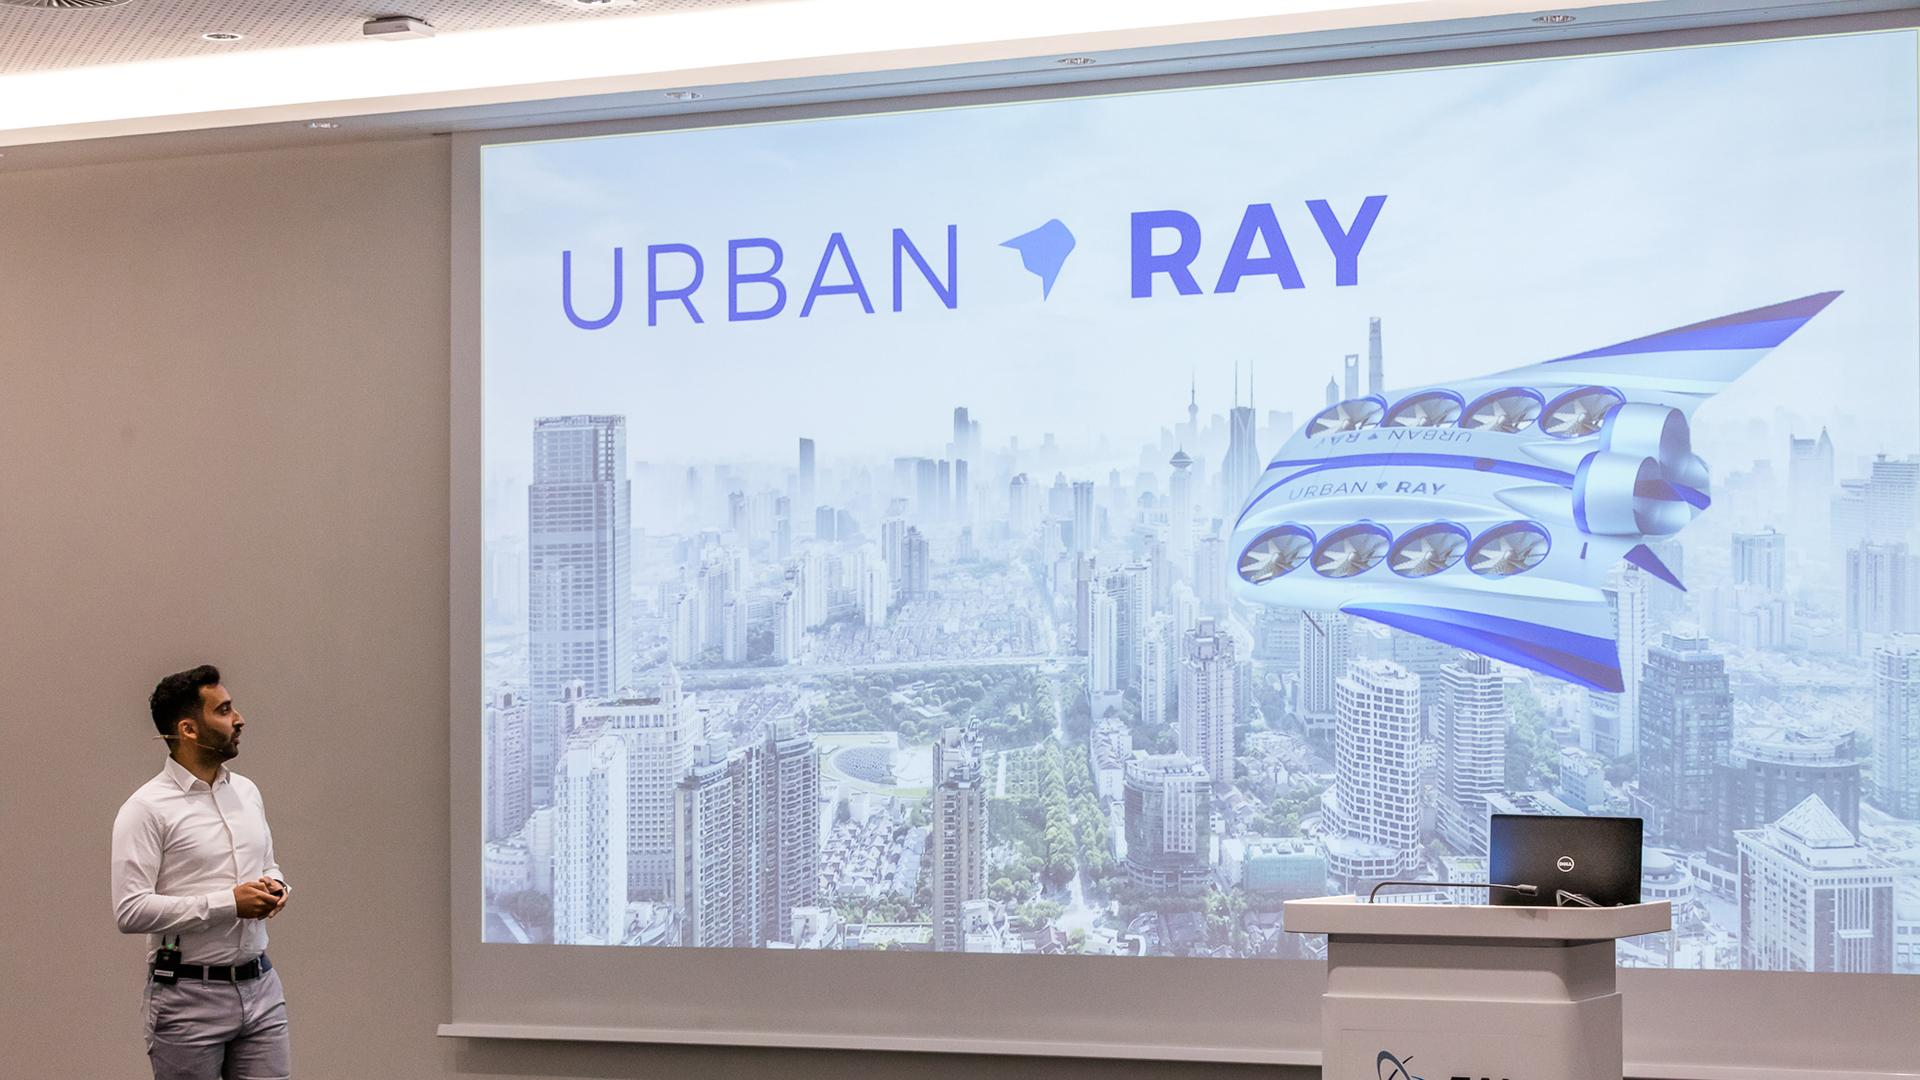 Presentation of the 'Urban Ray' concept